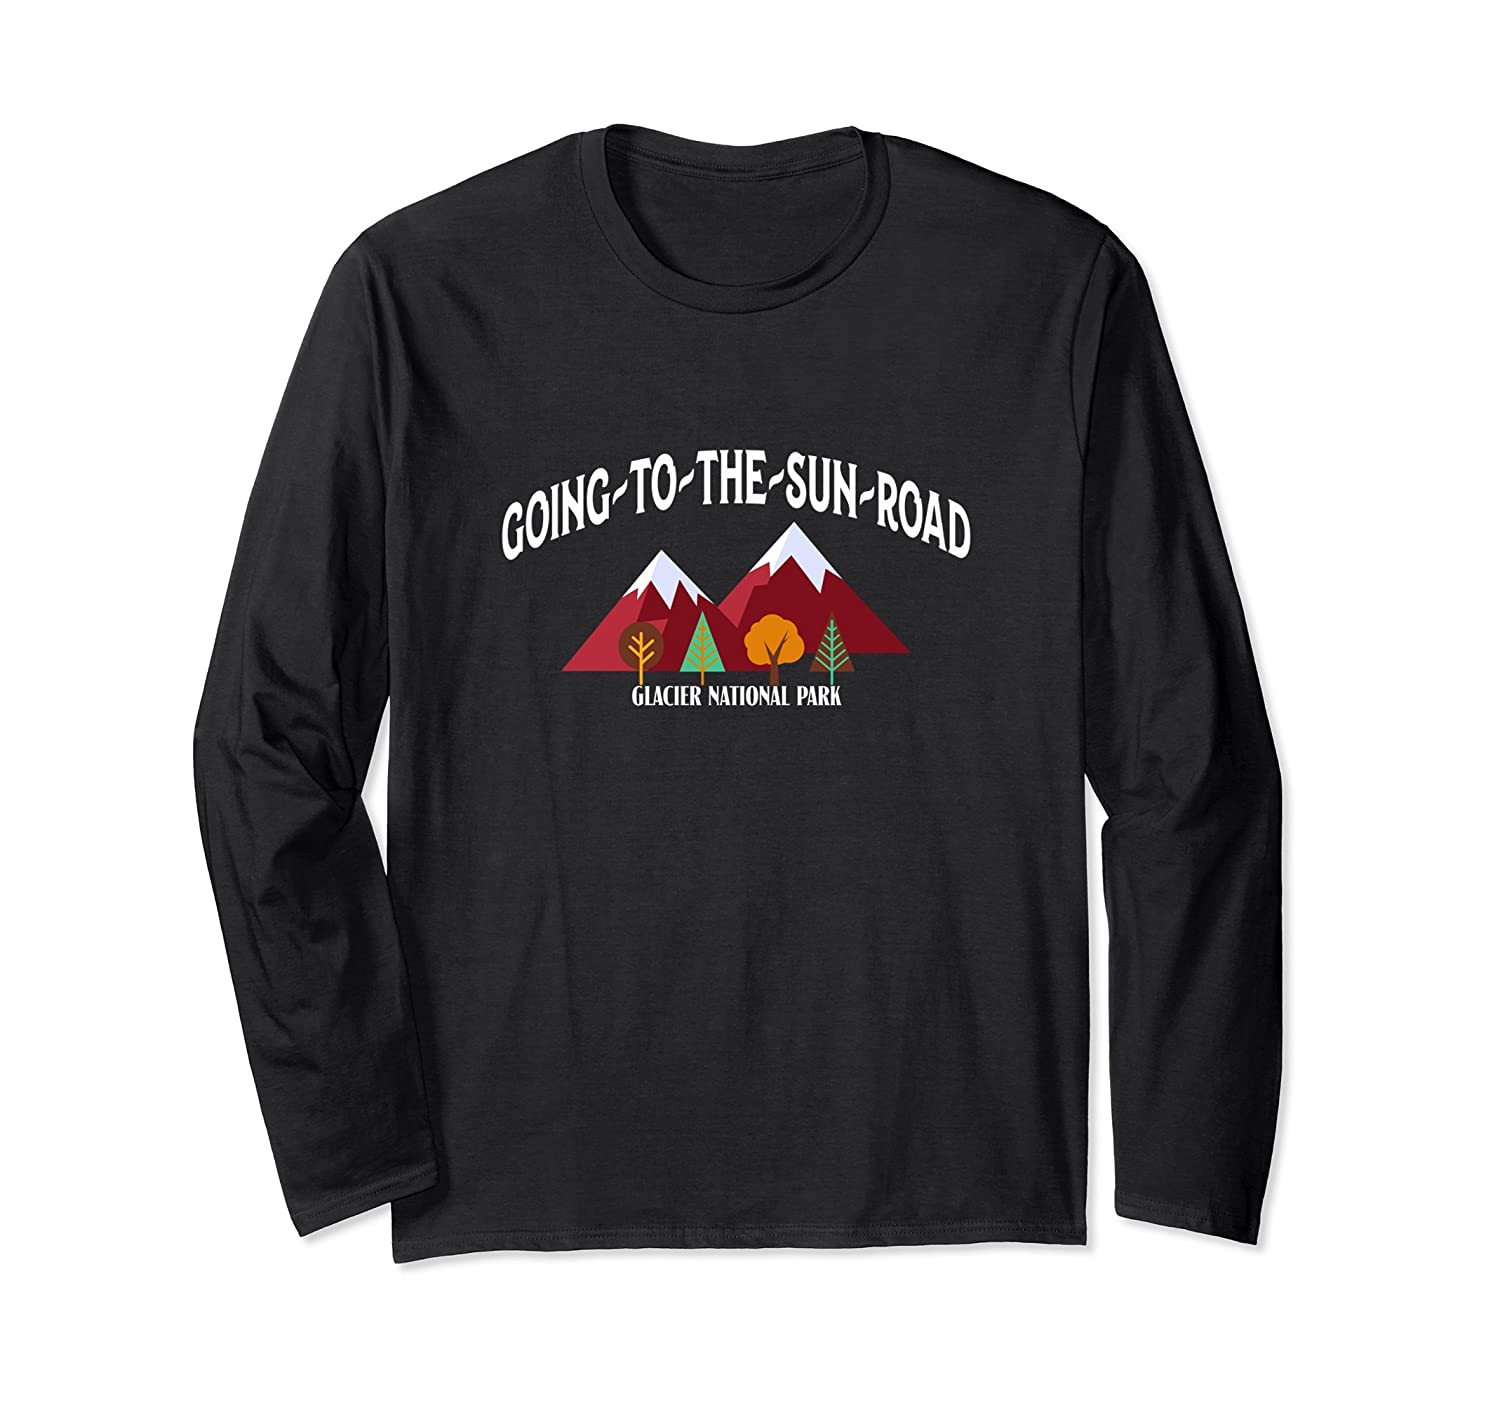 Glacier National Park Shirt Going To The Sun Road Souvernir-Newstyleth